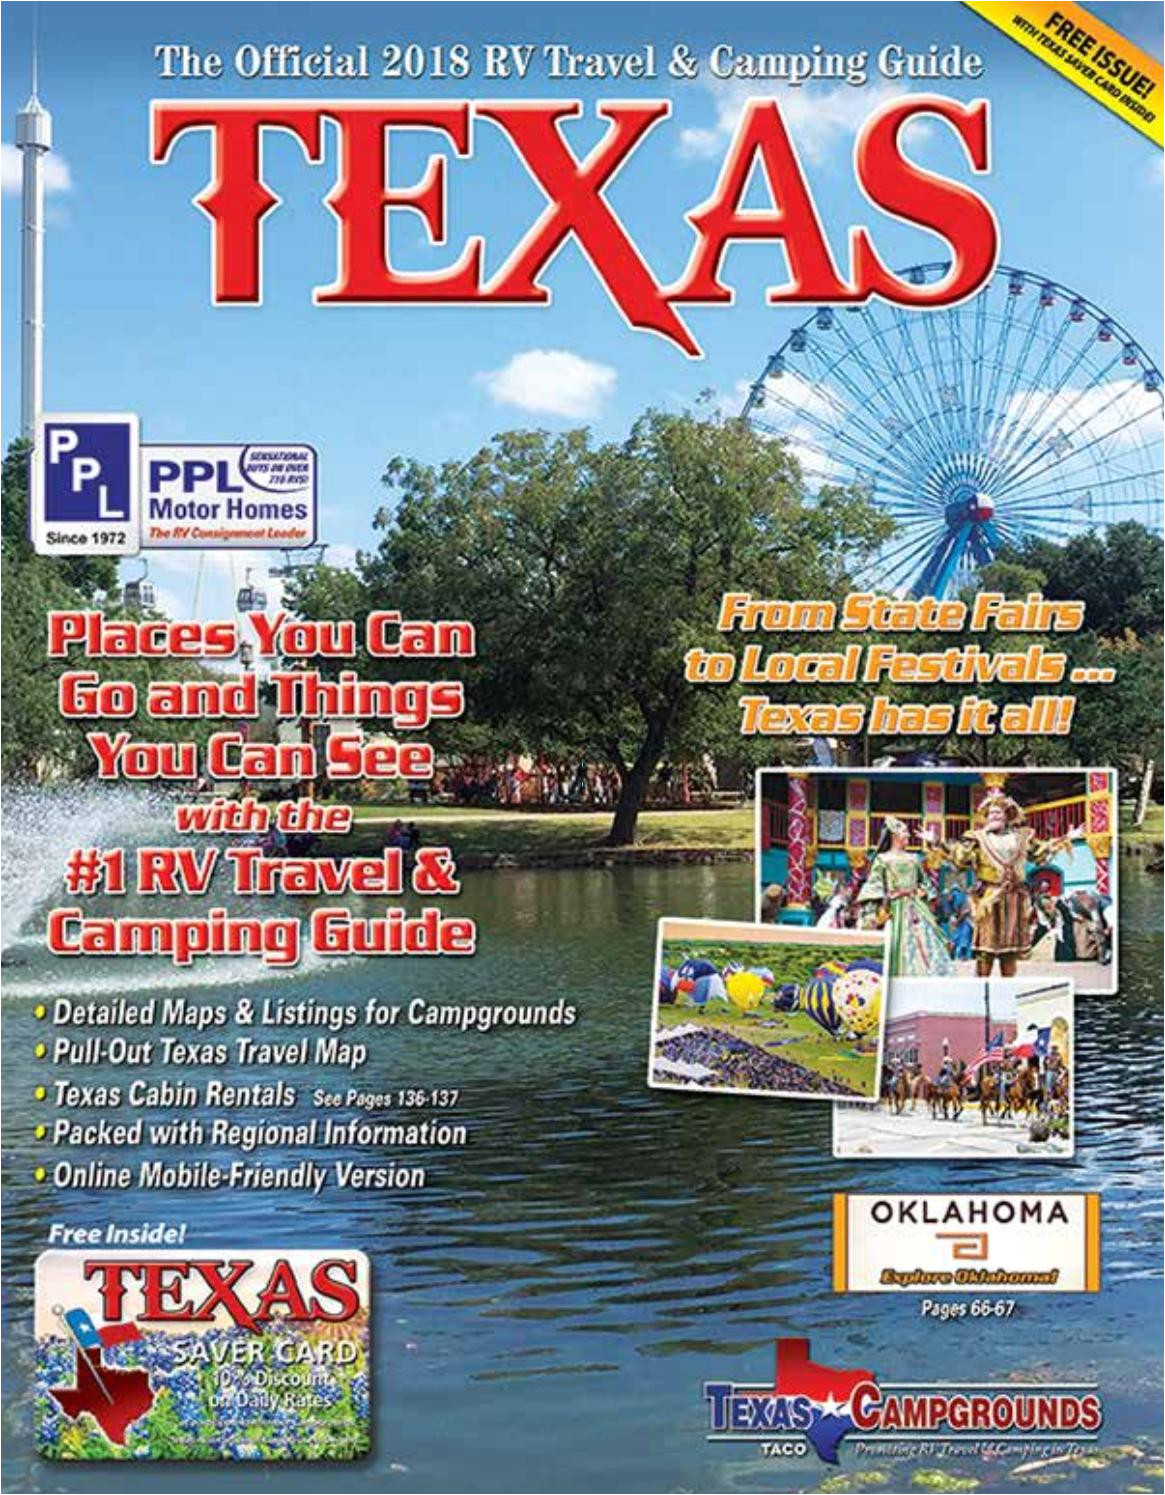 Oak Creek Mobile Homes Midland Tx 2018 Rv Travel Camping Guide to Texas by Ags Texas Advertising issuu